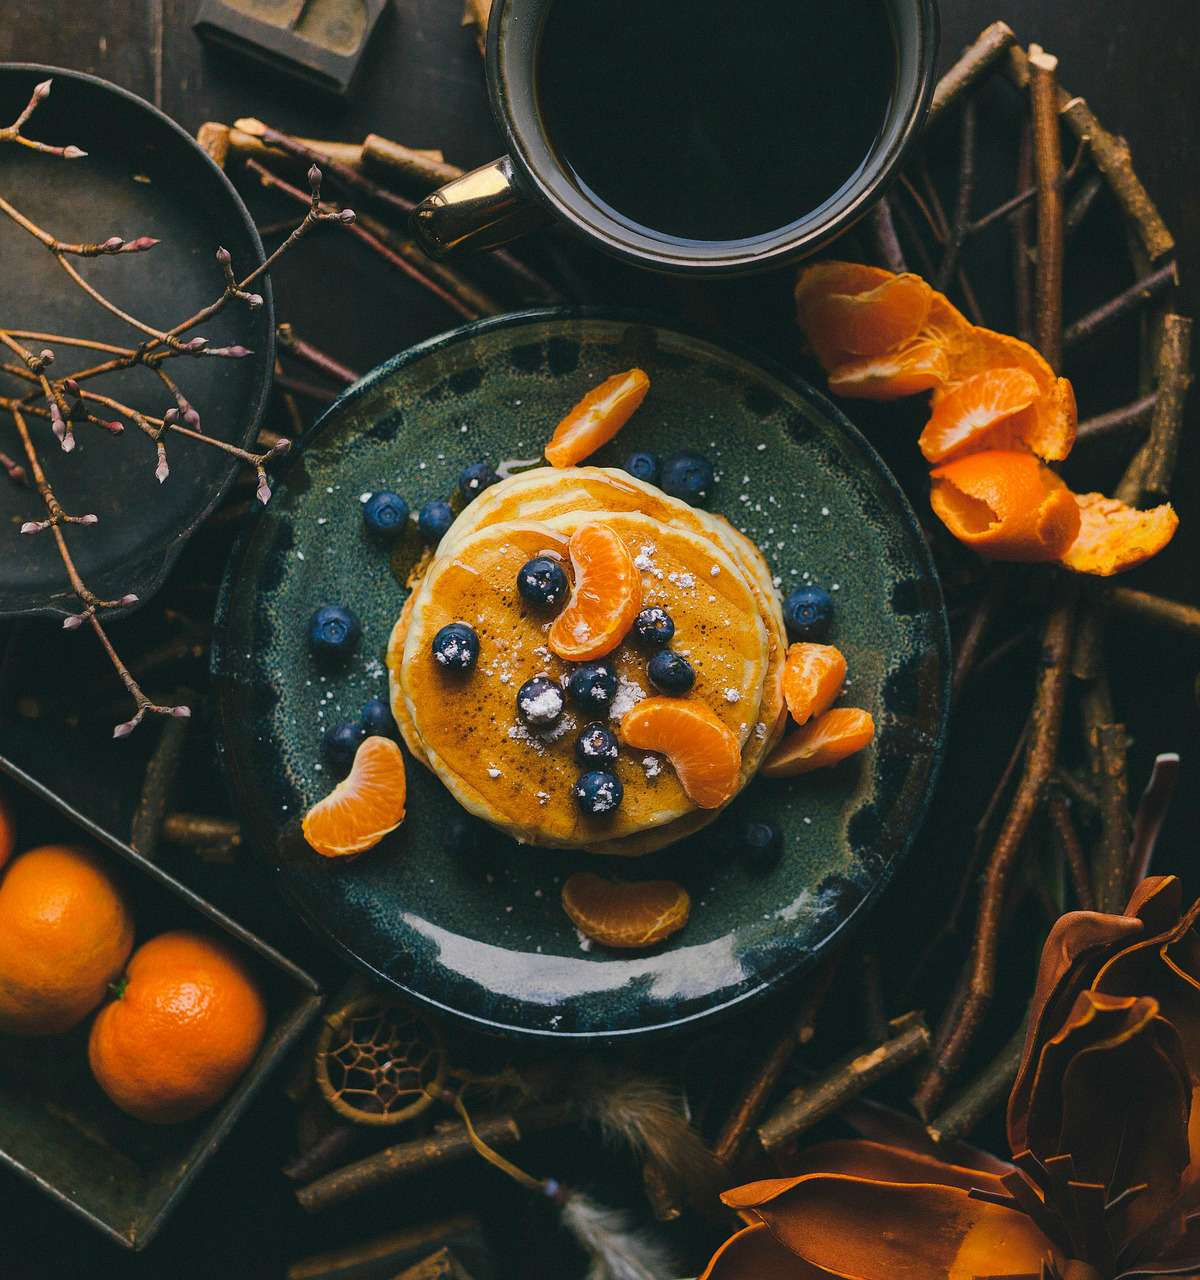 Food blogs with eye catching photography